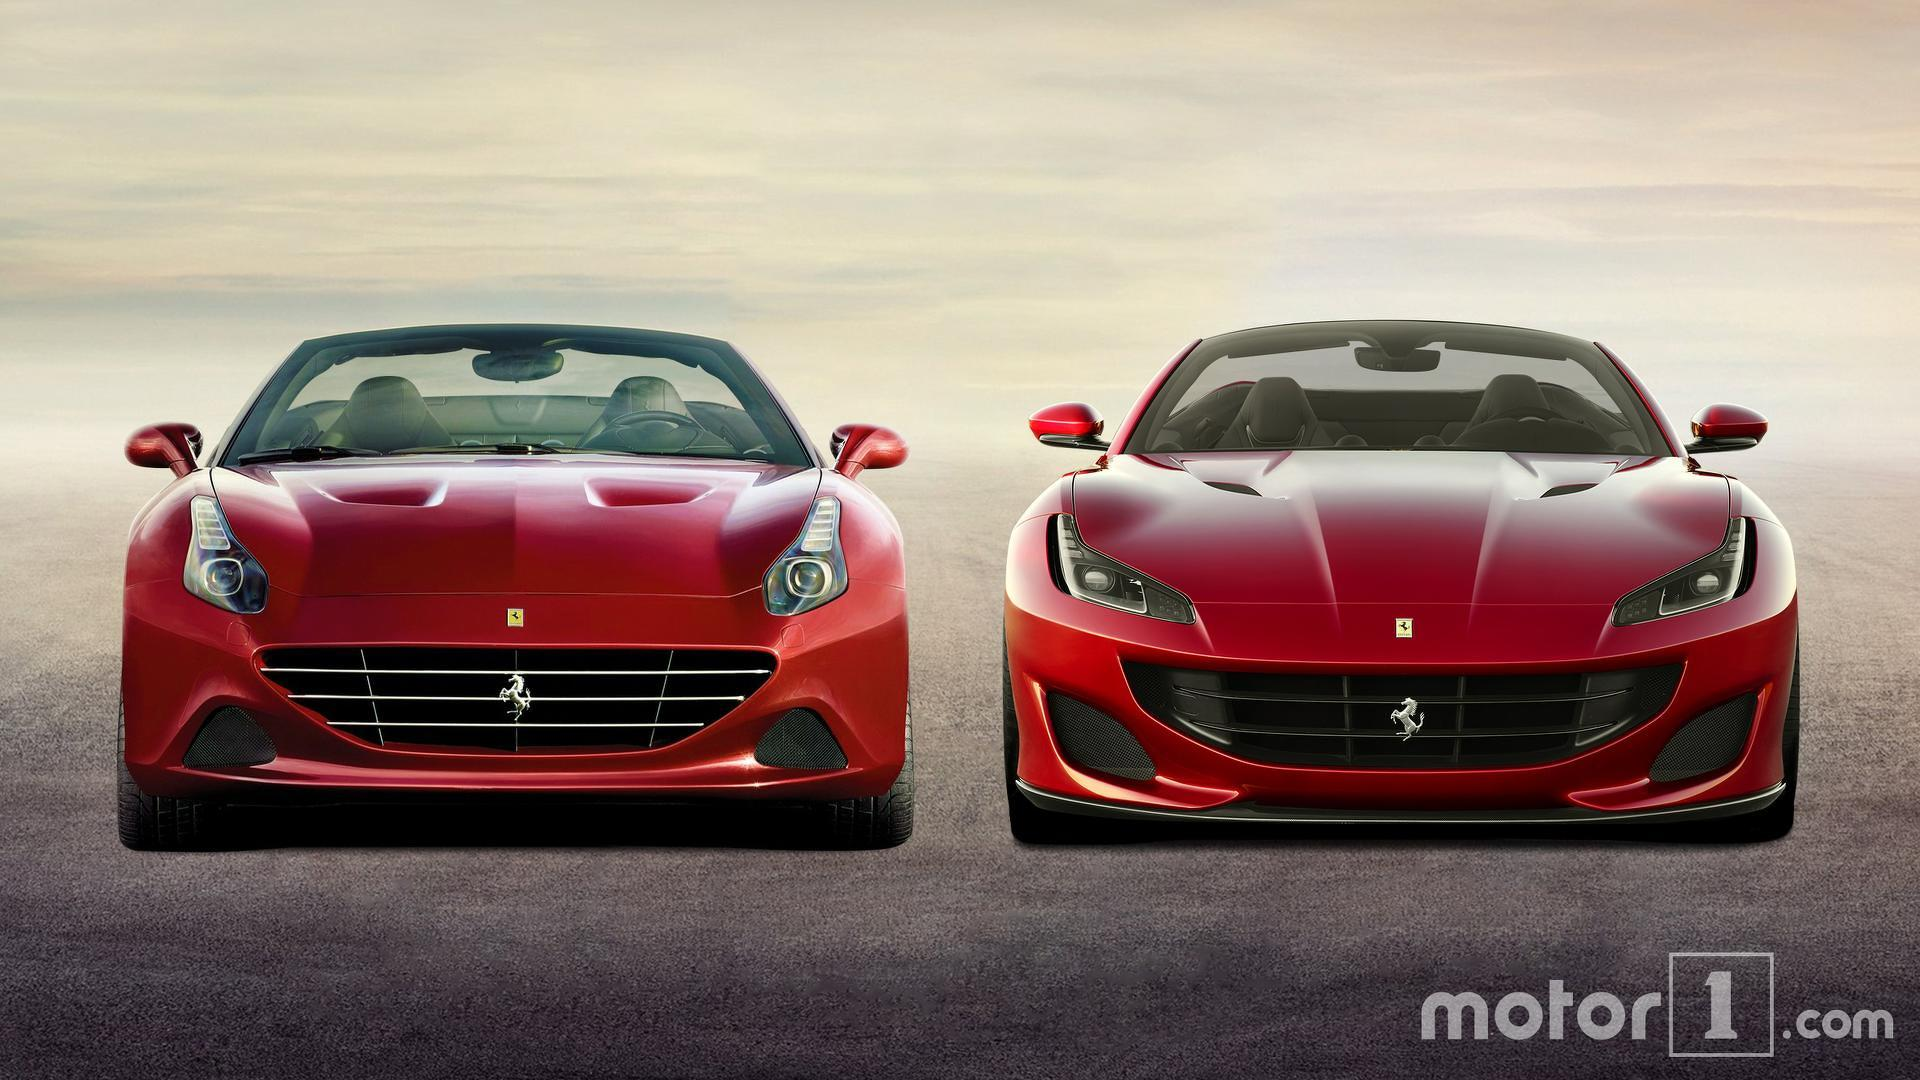 ferrari portofino vs california t see the changes side by side. Black Bedroom Furniture Sets. Home Design Ideas